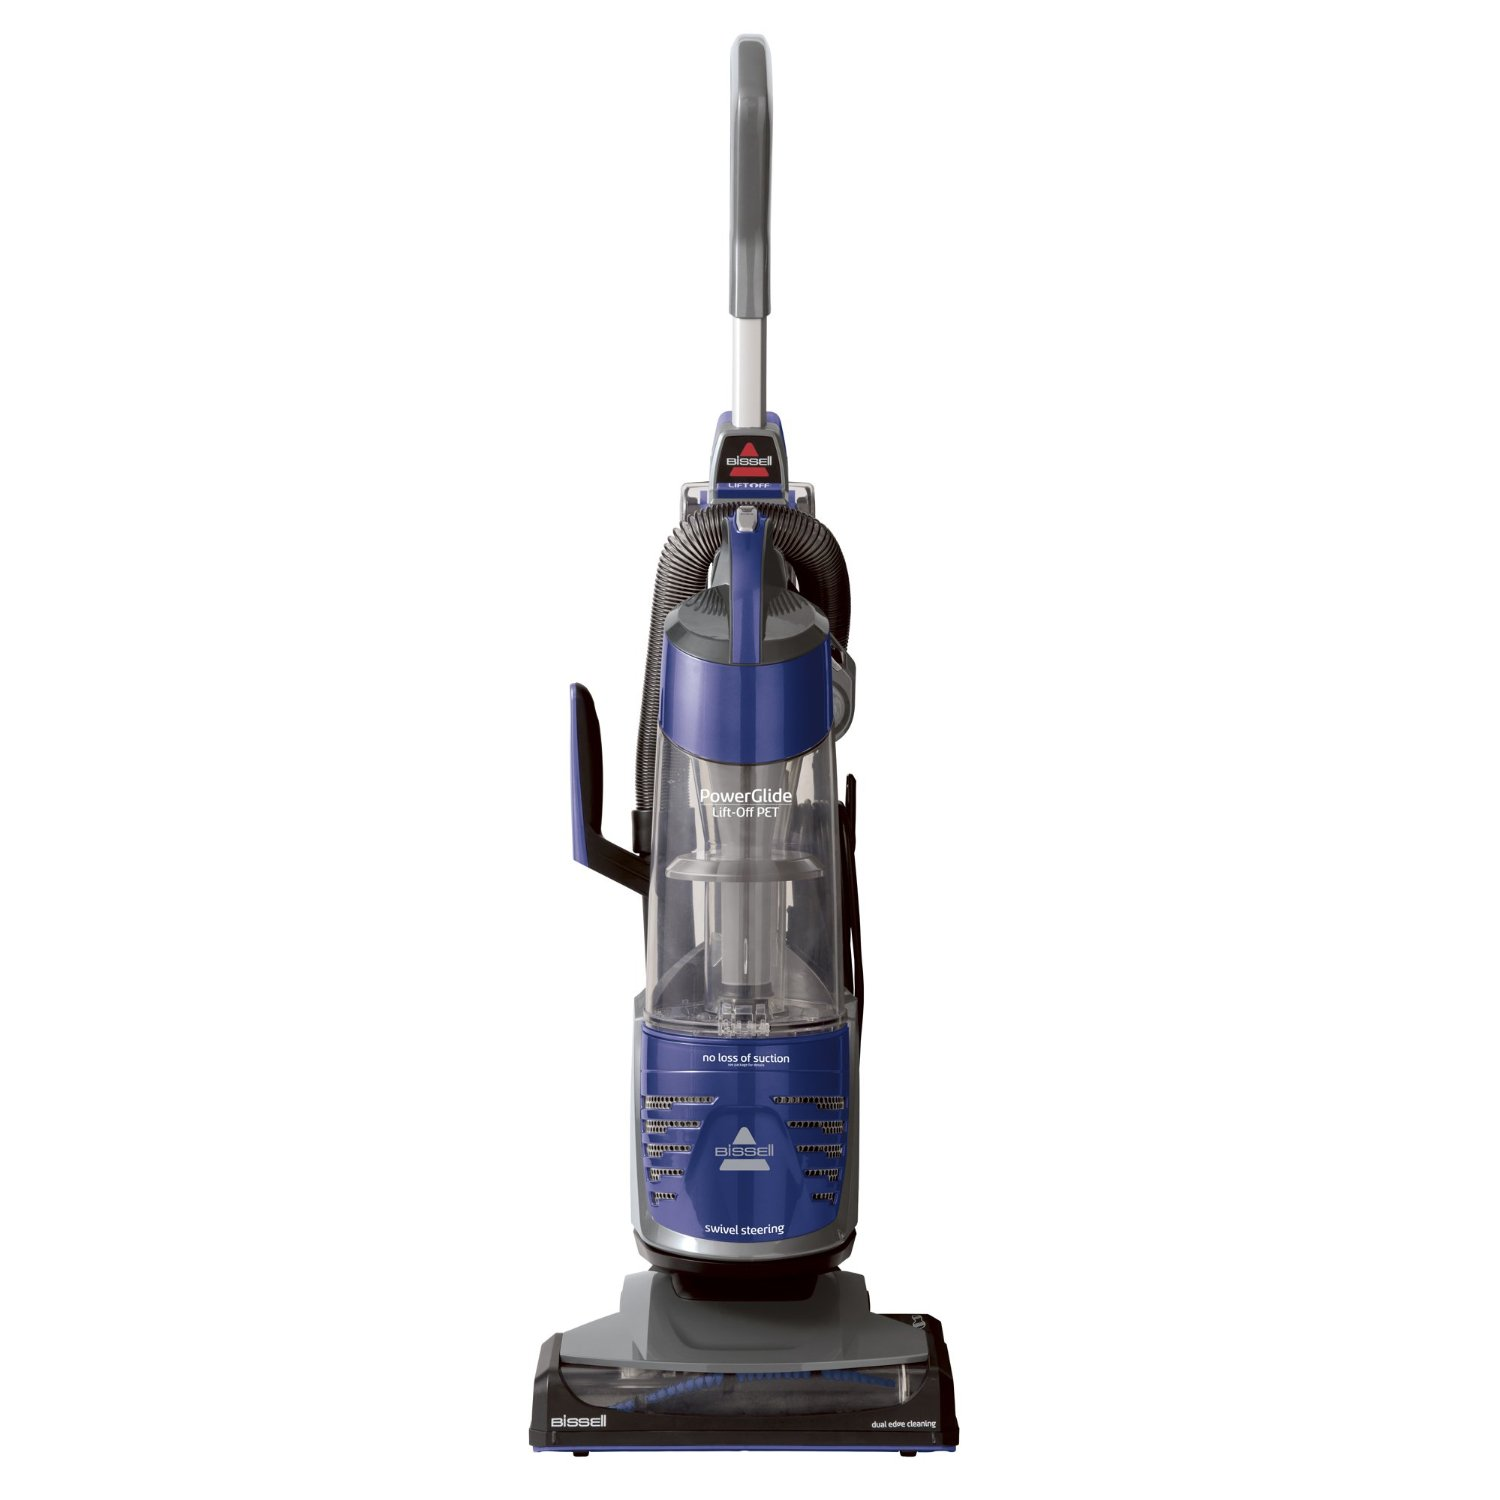 Best BISSELL PowerGlide Pet Bagless Upright Vacuum, 2763 Review